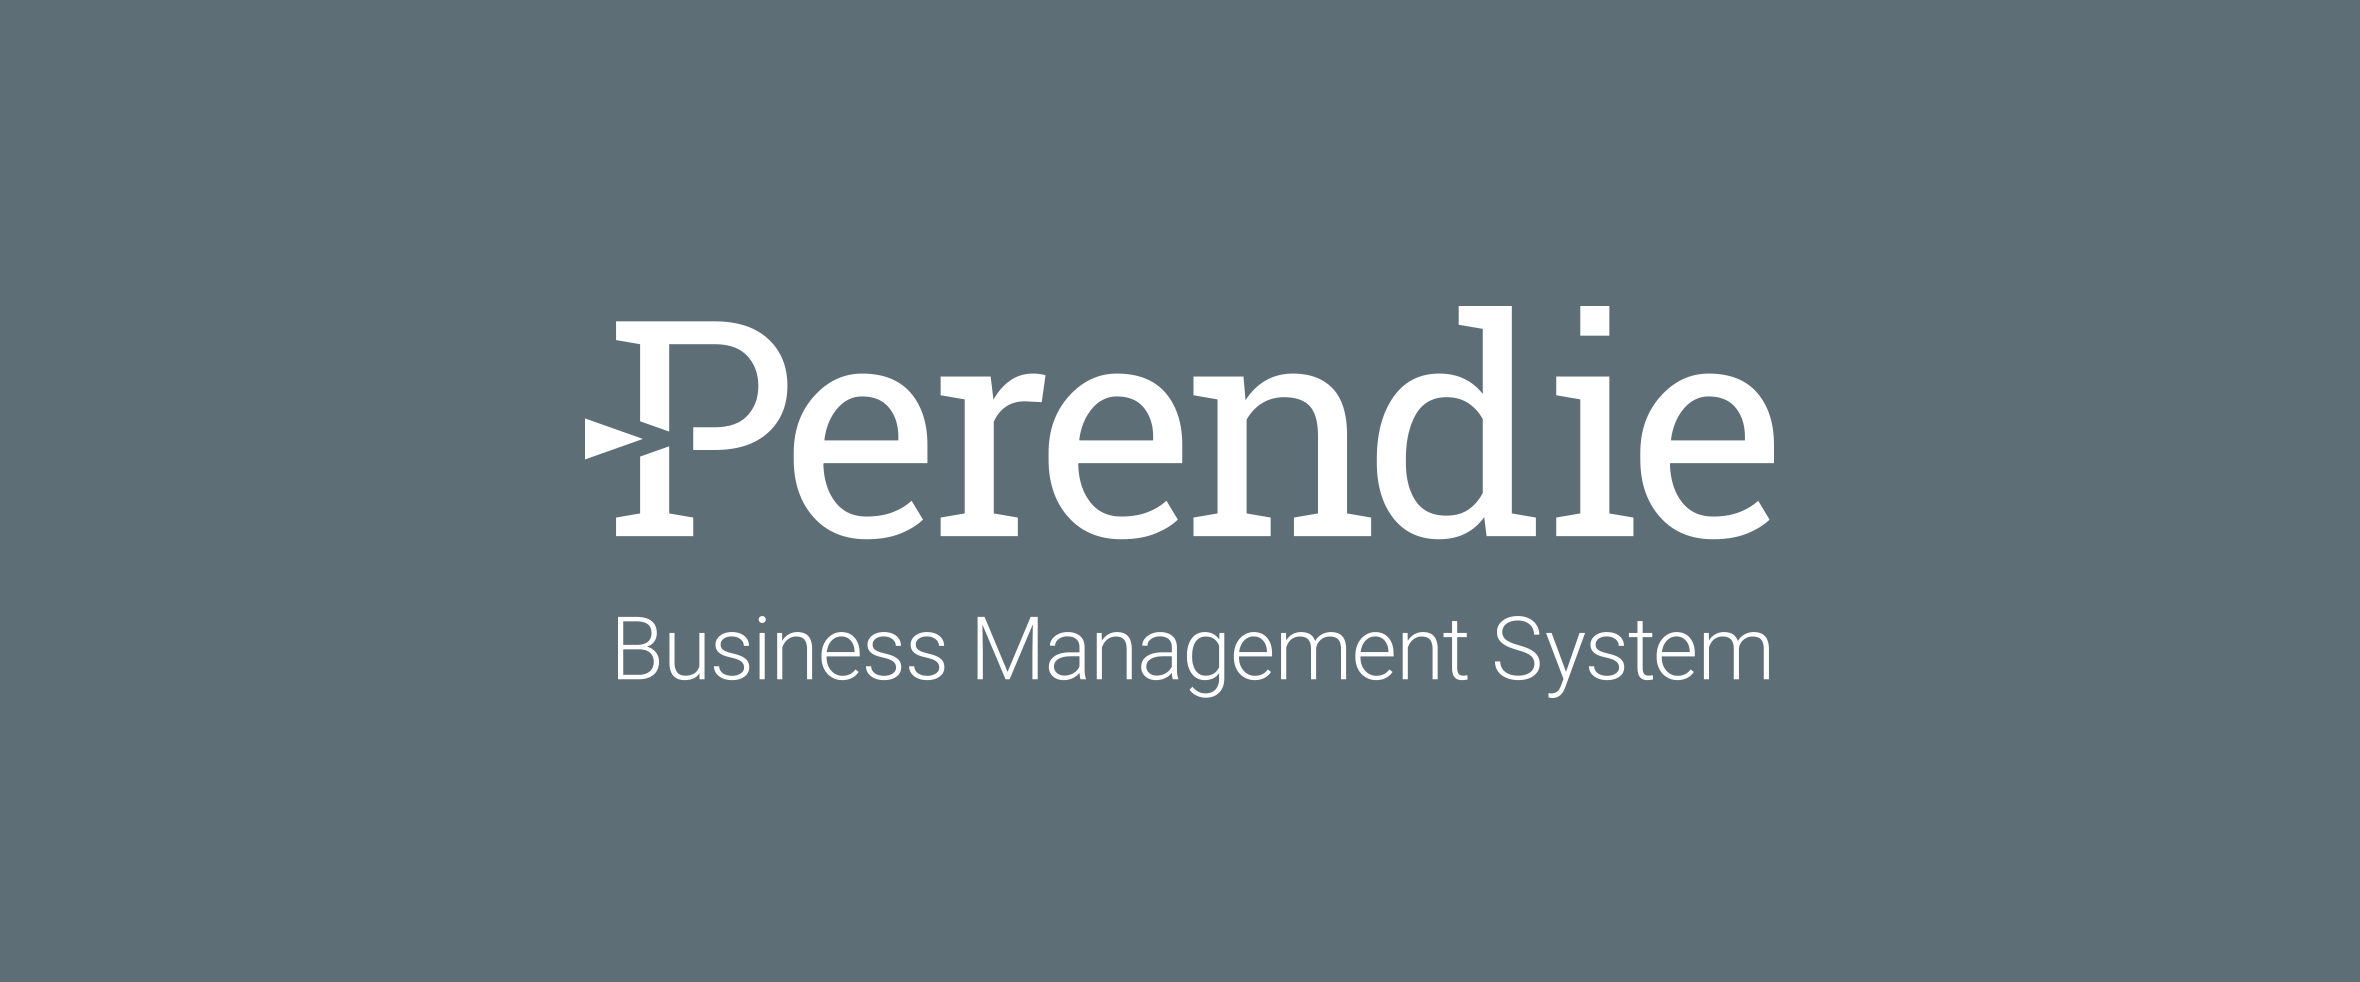 Perendie Business Management System identity design